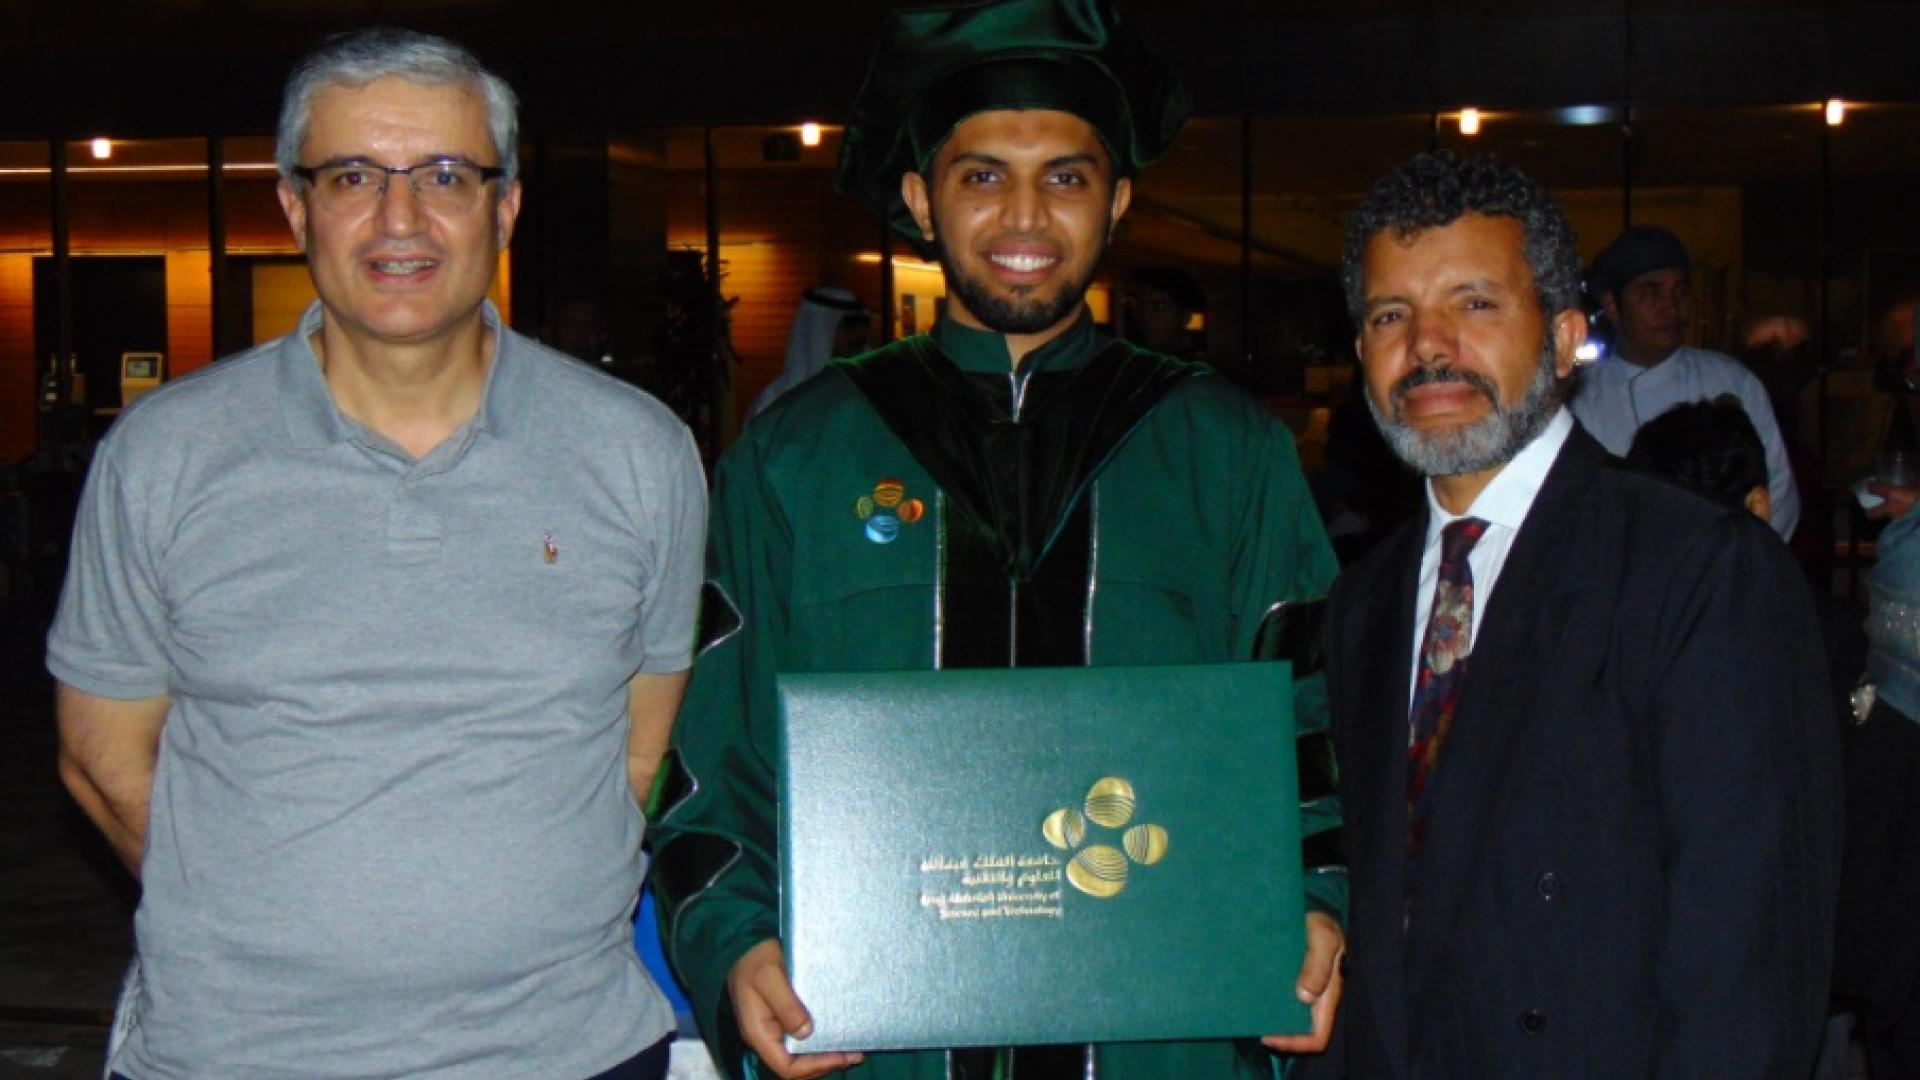 Professor Alouini with Lokman Sboui and his father during graduation ceremony